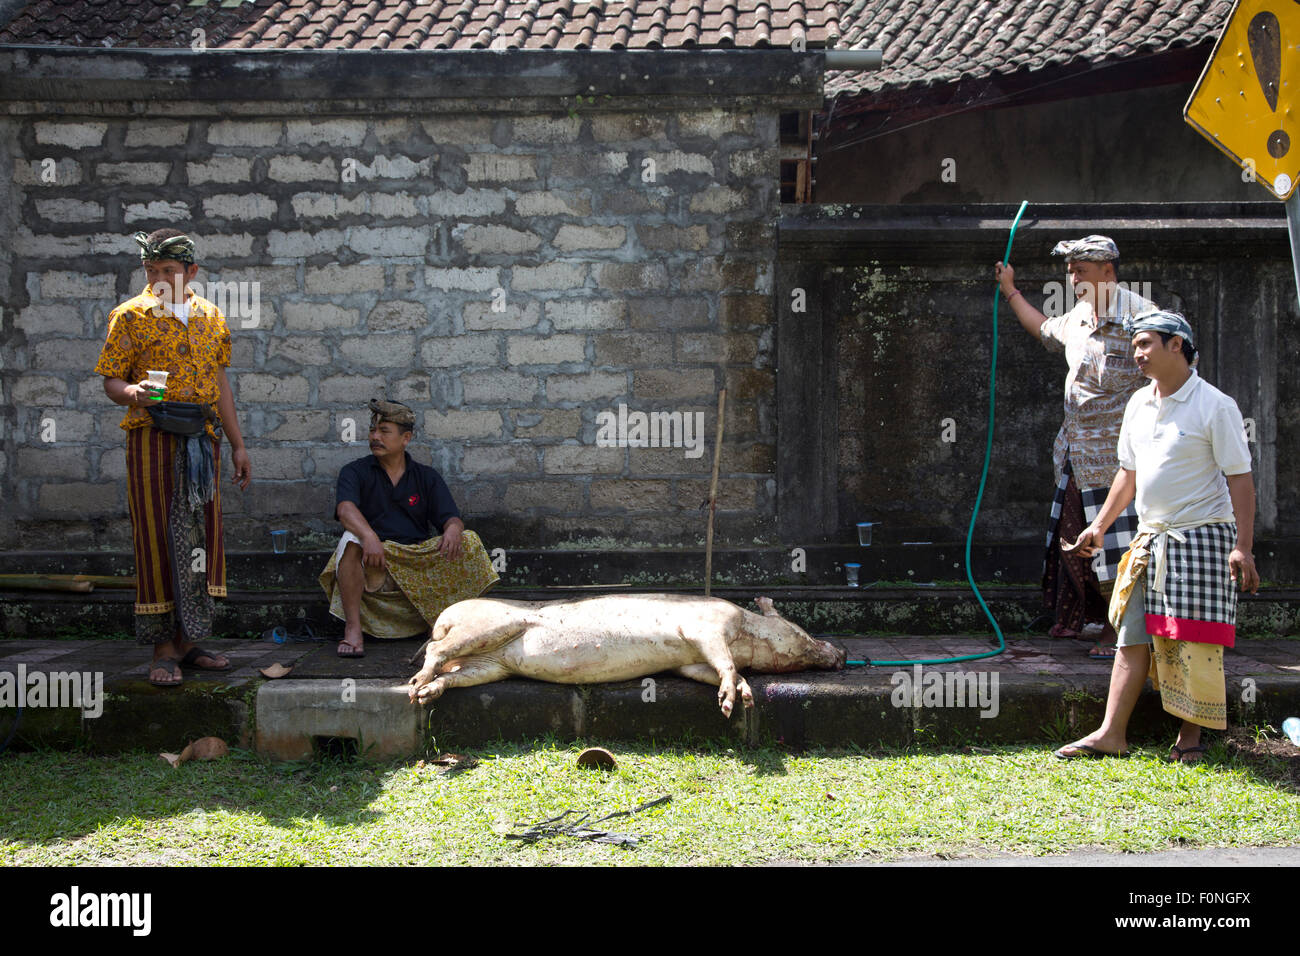 Men sacrificing a pig in preparation for a ceremony in Bali Indonesia - Stock Image